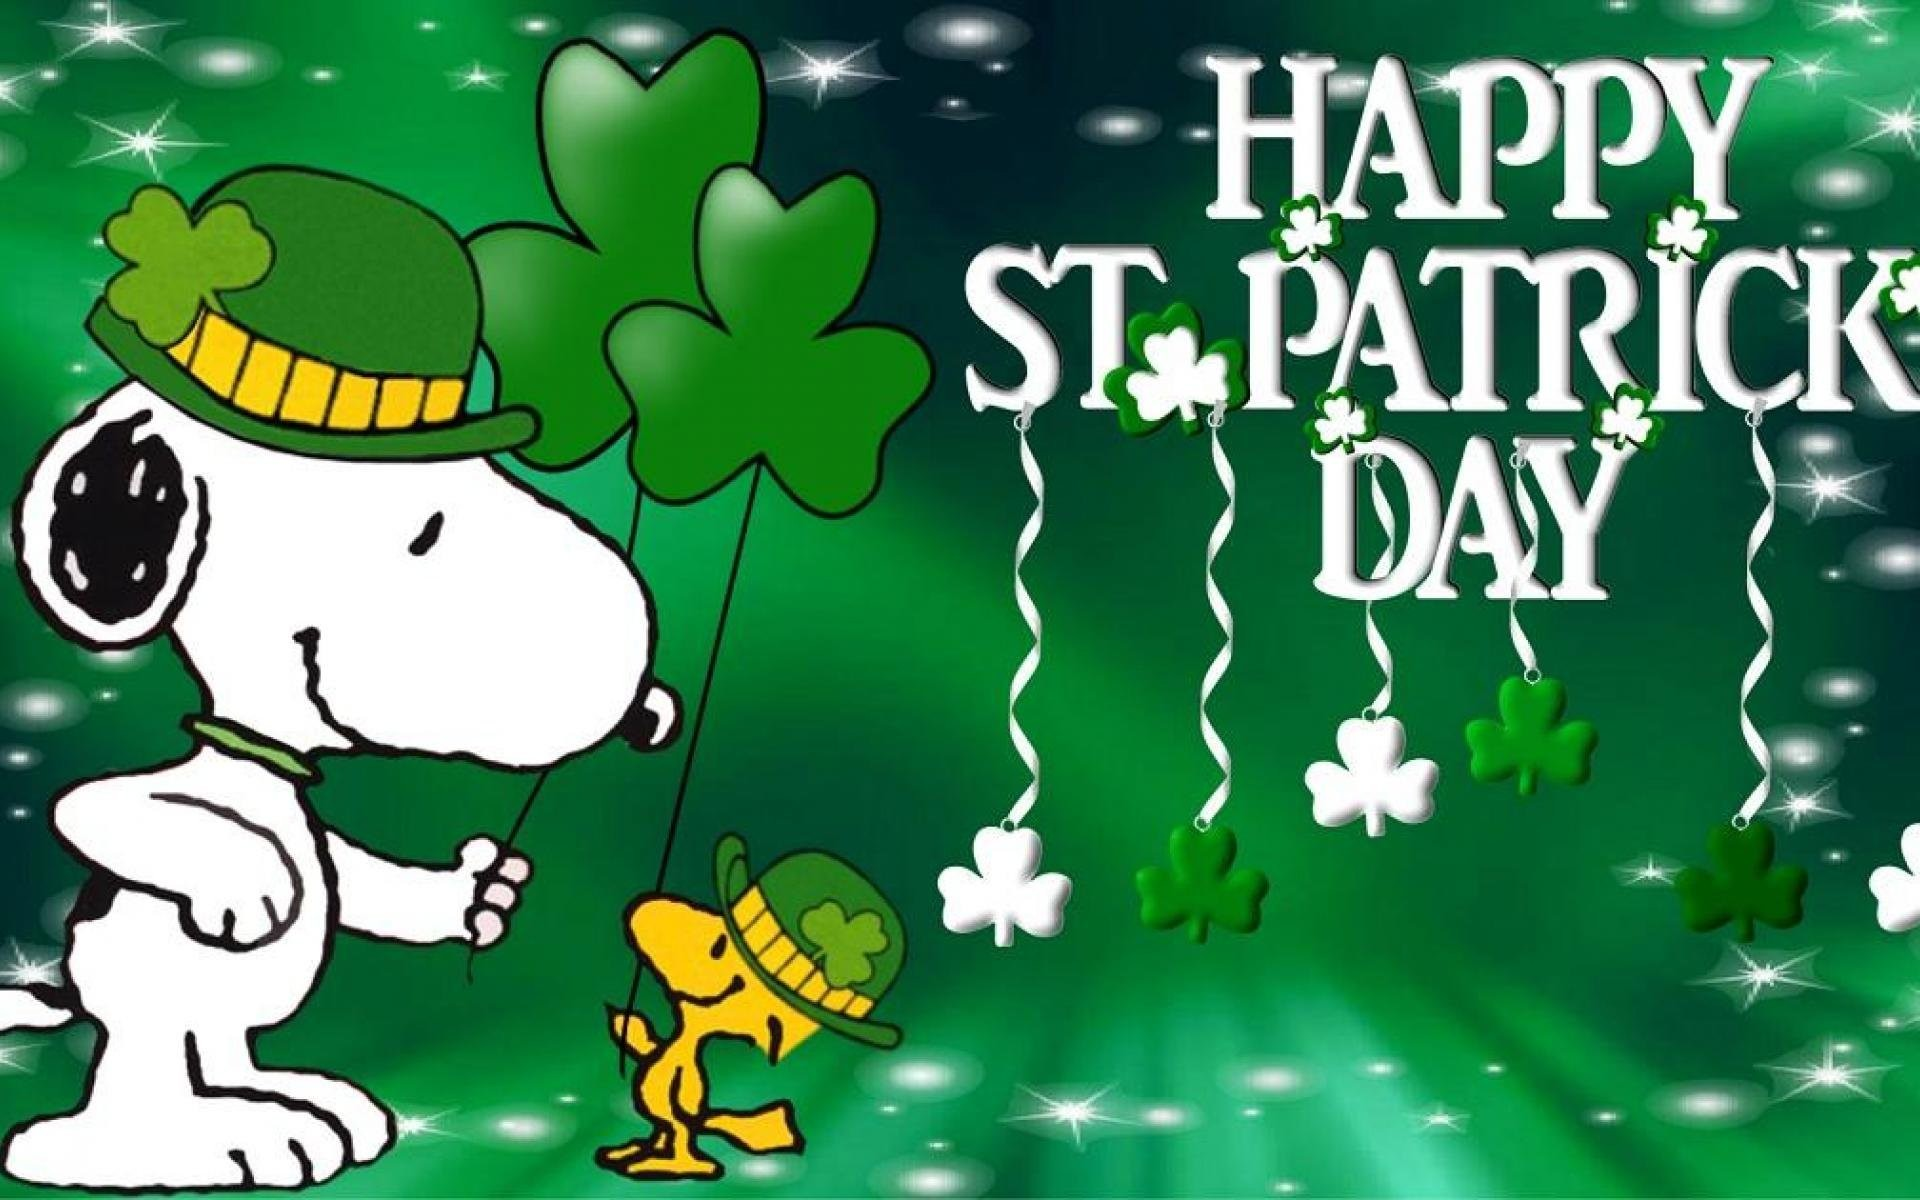 Saint Patrick Day Wallpaper 62 images 1920x1200